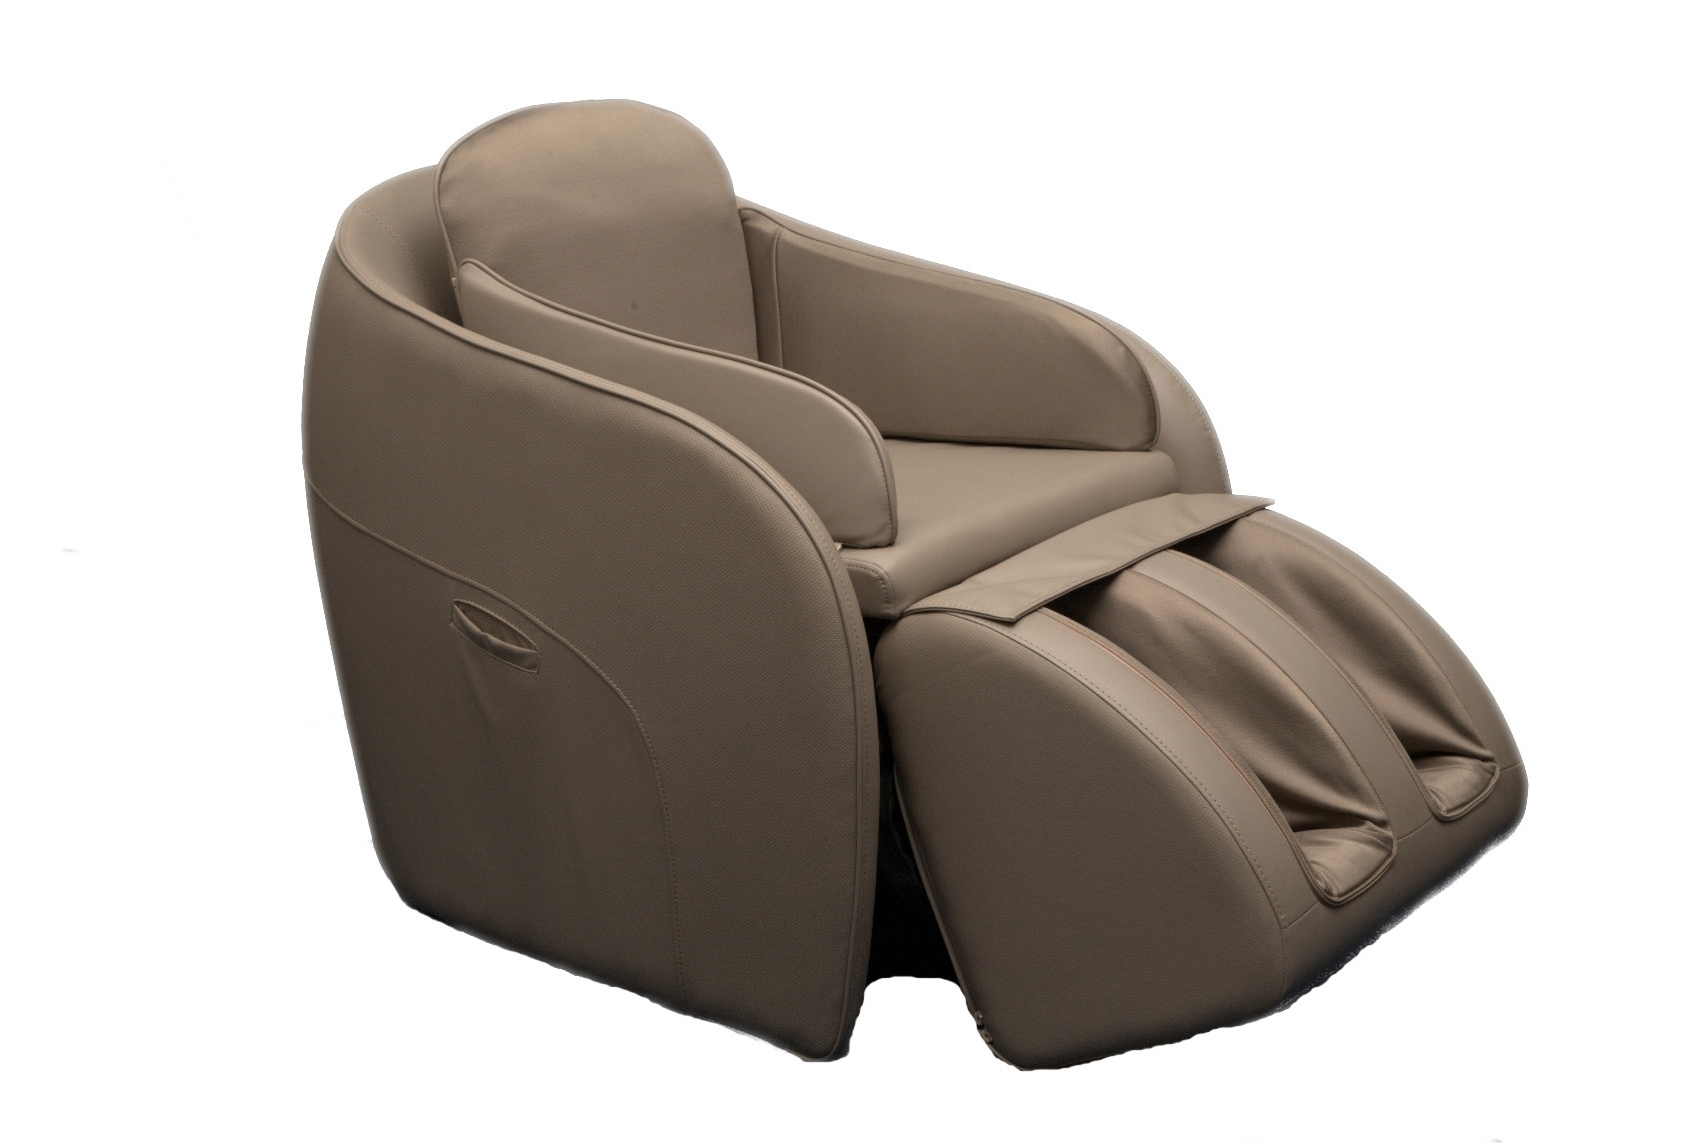 Popular Foot Massage Sofas Intended For Modern Concept Foot Massage Chairs With Portable Foot Massage Sofa (View 11 of 20)